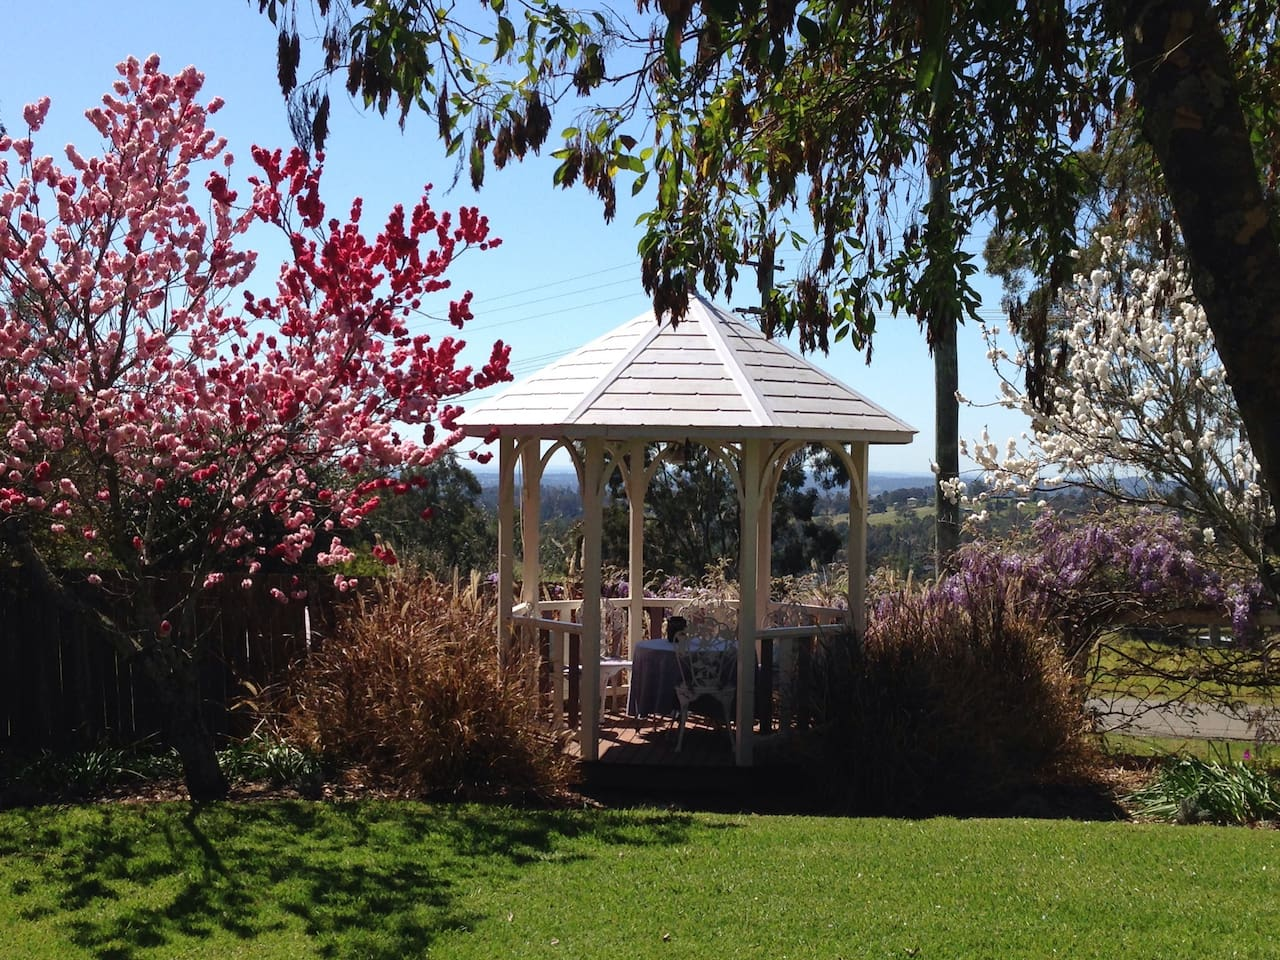 Spring blossoms and a tranquil view from the gazebo